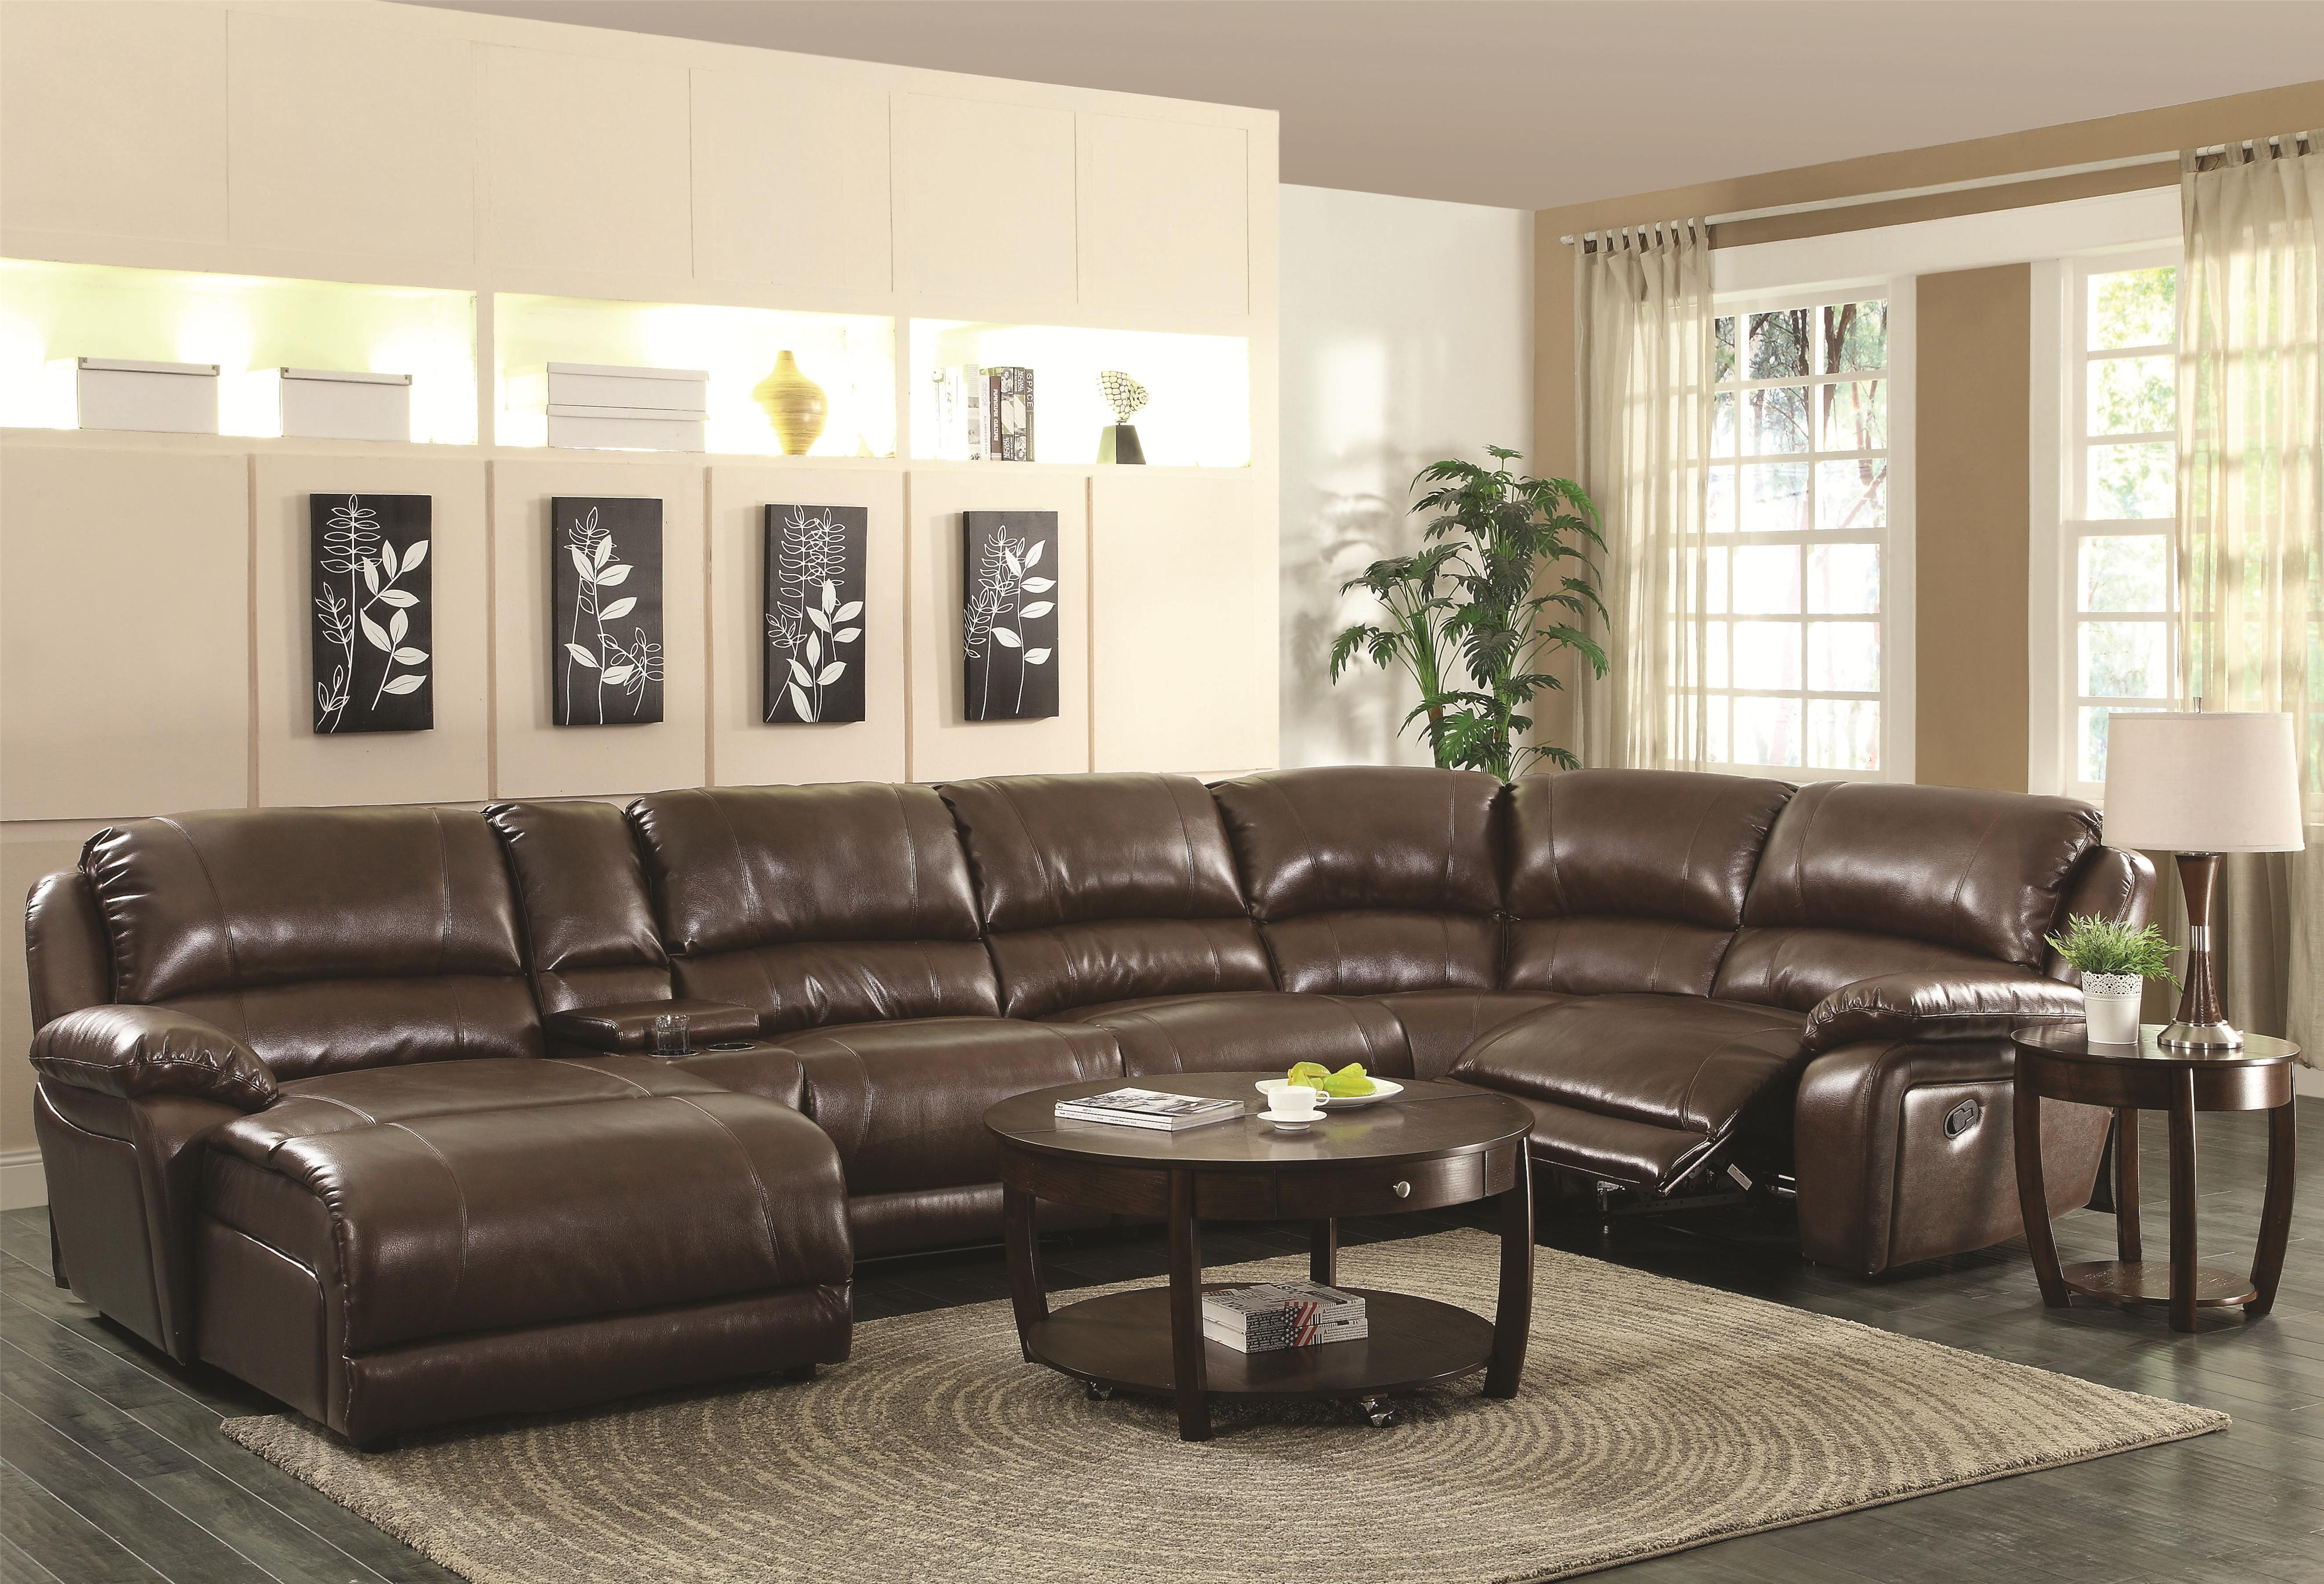 sectional reclining leather sofas wooden sofa set second hand bangalore coaster mackenzie chestnut 600357 6 piece